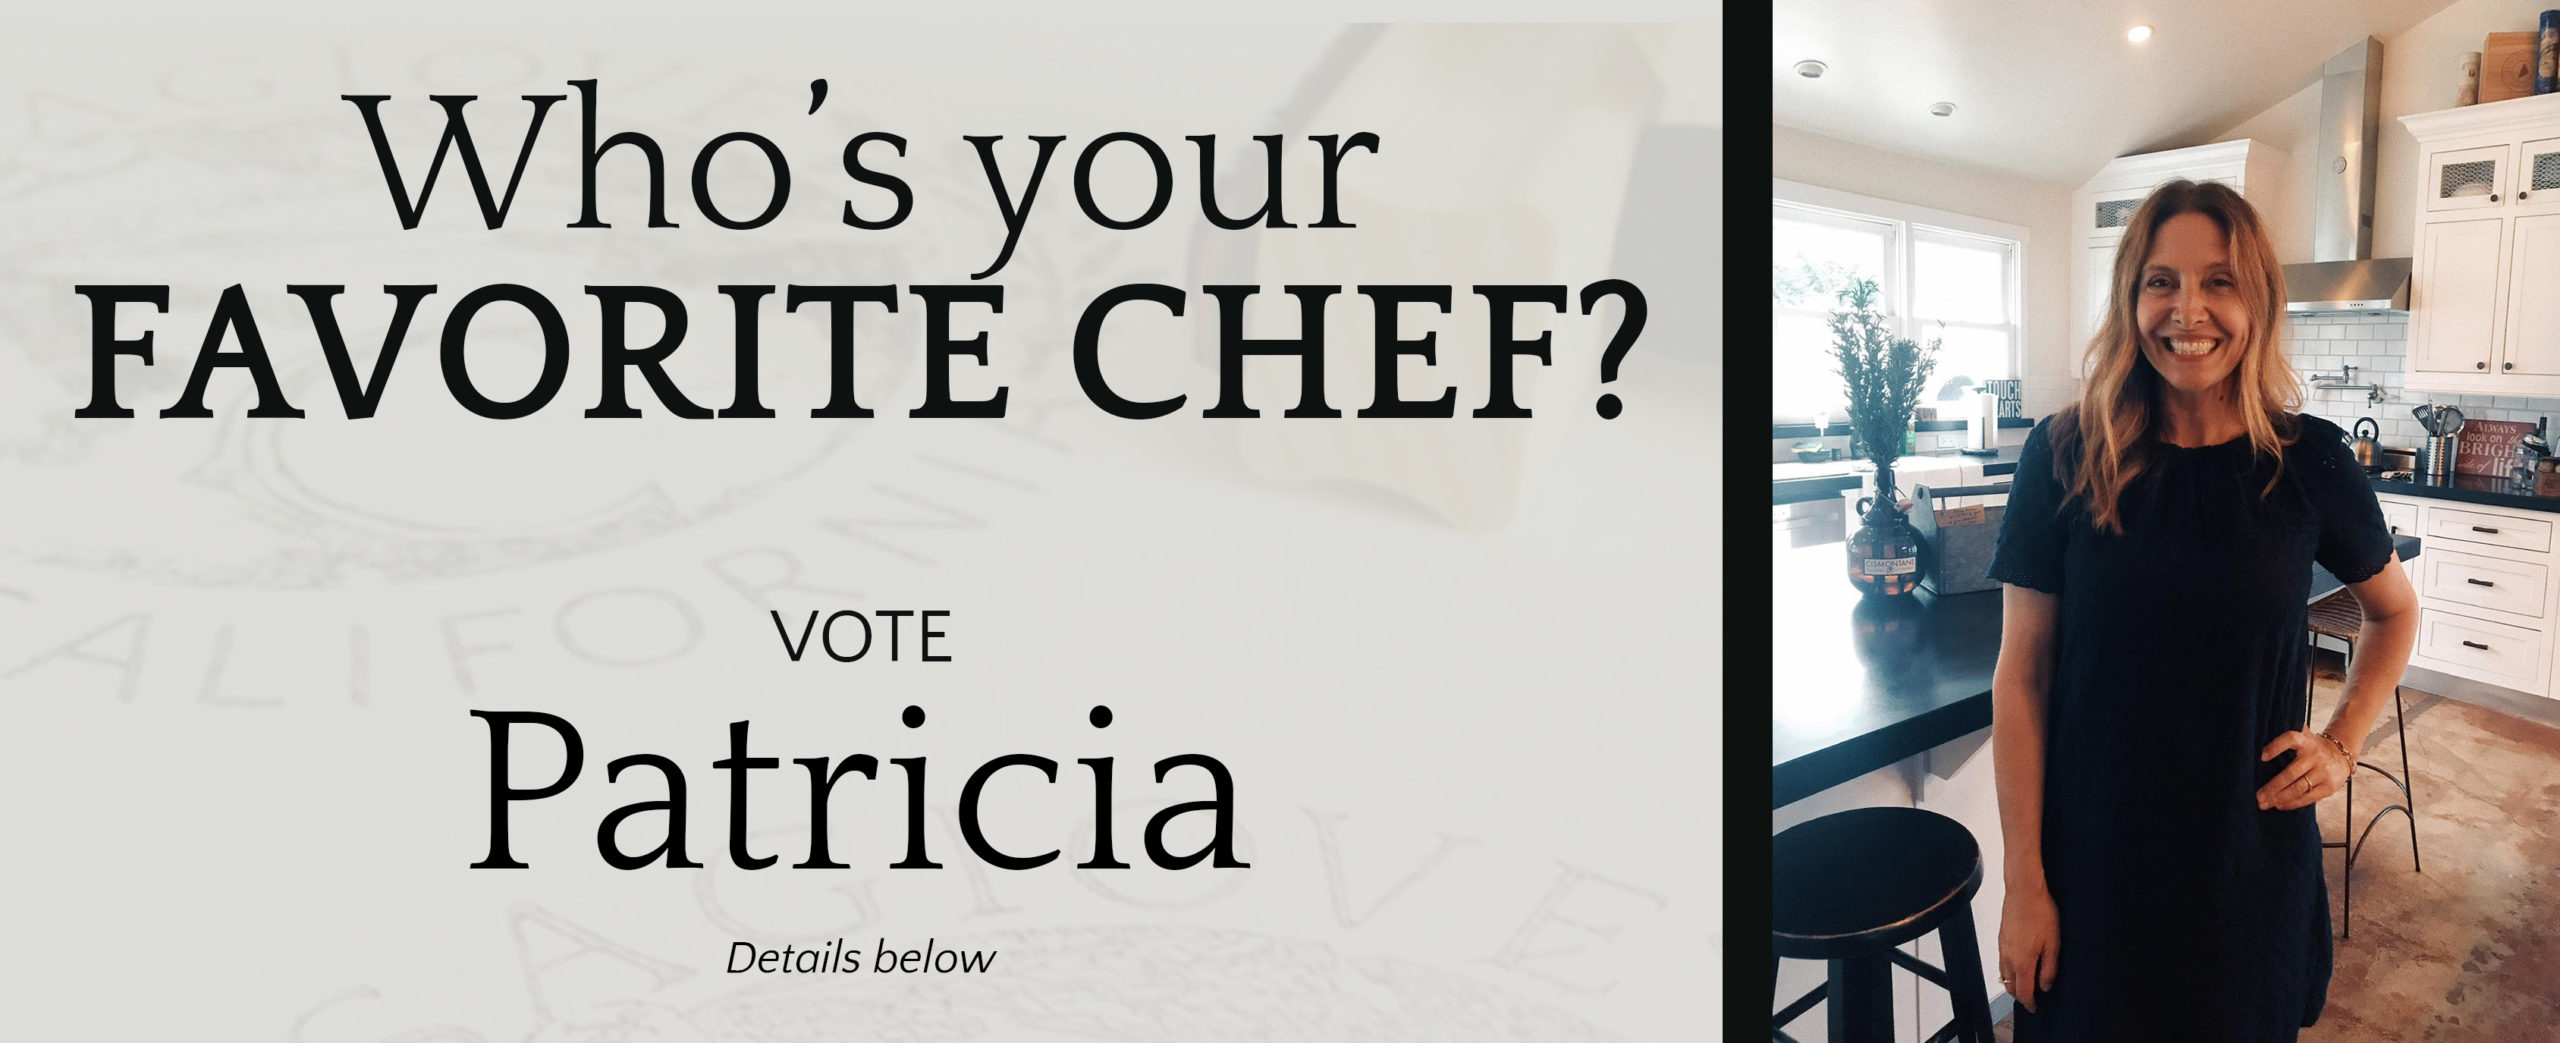 Who's your favorite chef? VOTE Patricia Details below